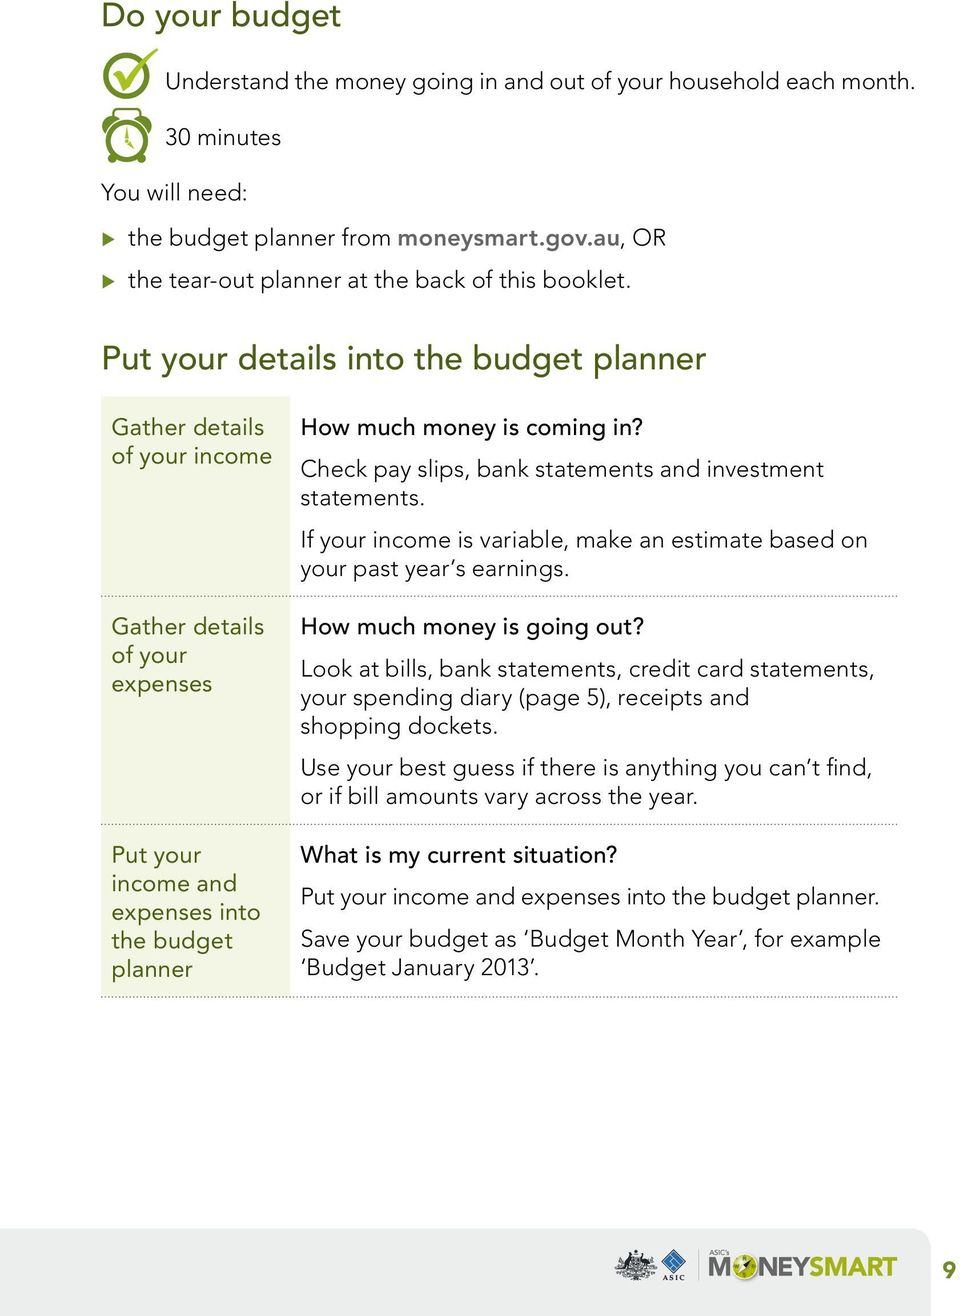 Put your details into the budget planner Gather details of your income Gather details of your expenses Put your income and expenses into the budget planner How much money is coming in?